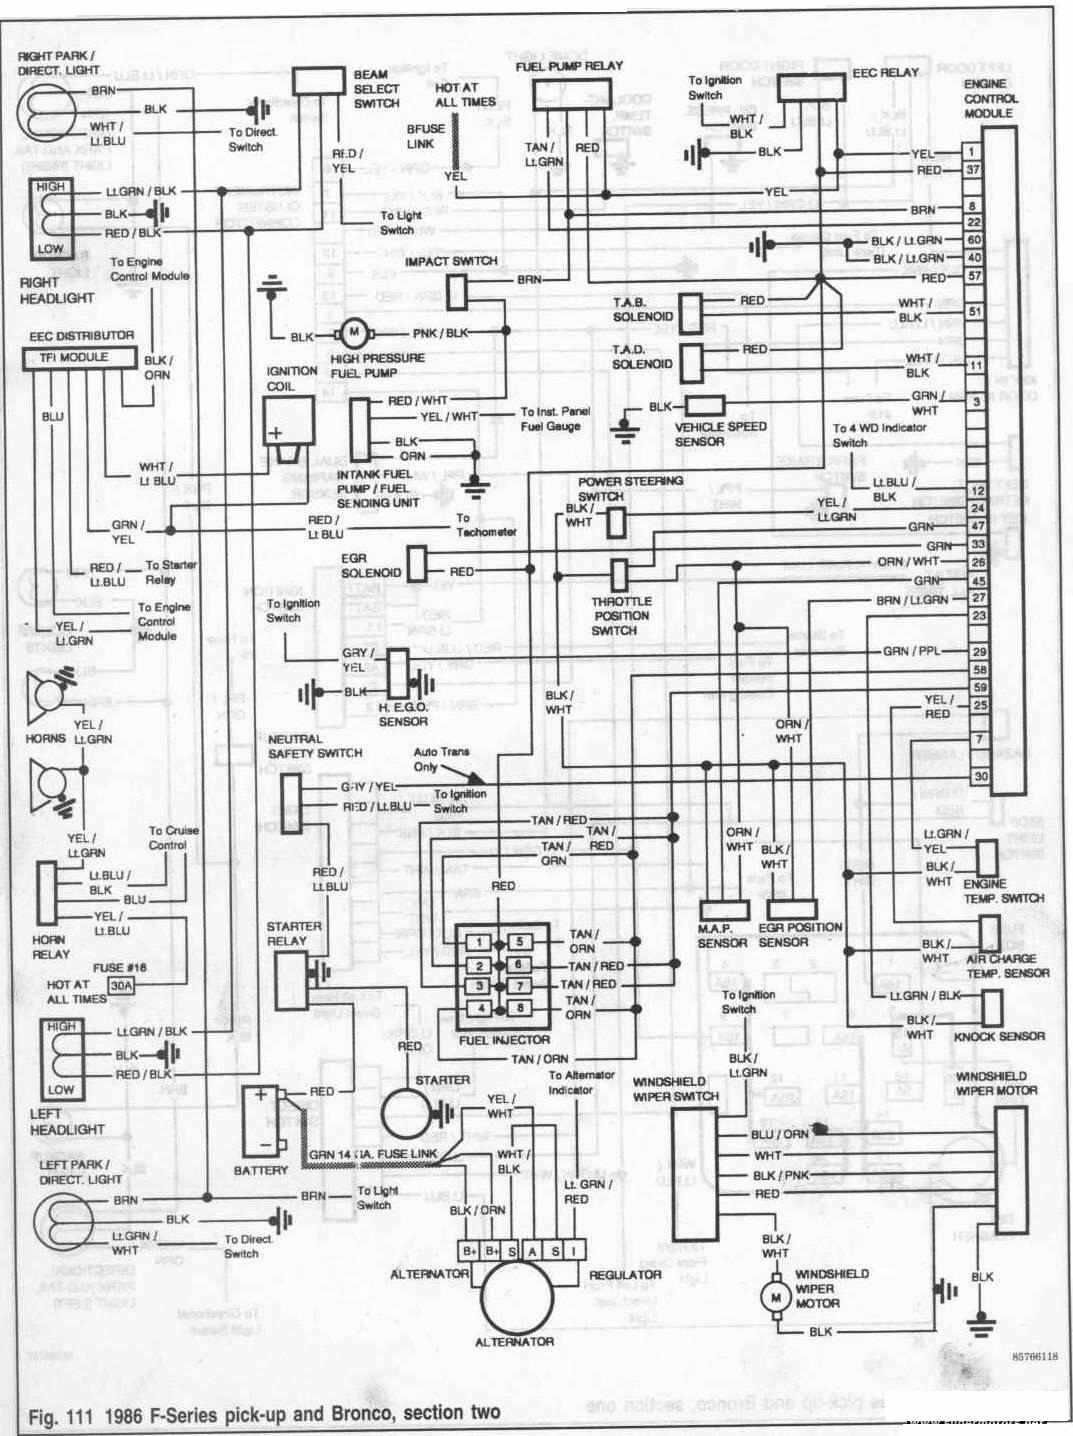 1981 Ford F150 Fuel System Diagram - Wiring Diagram P  Mustang Wiring Diagram on 2005 mustang wiring diagram, 1964 mustang wiring diagram, 1967 charger wiring diagram, 1968 mustang wiring diagram, 1973 charger wiring diagram, 2002 mustang wiring diagram, 2007 mustang wiring diagram, 1999 mustang wiring diagram, 1967 mustang wiring diagram, 1981 mustang brochure, 1977 mustang wiring diagram, 1980 mustang wiring diagram, 2003 mustang wiring diagram, 1975 ford mustang ii wiring diagram, 1965 mustang wiring diagram, 1970 mustang wiring diagram, 1973 mustang mach 1 wiring diagram, 1966 mustang wiring diagram, 1993 mustang wiring diagram, 1998 mustang wiring diagram,